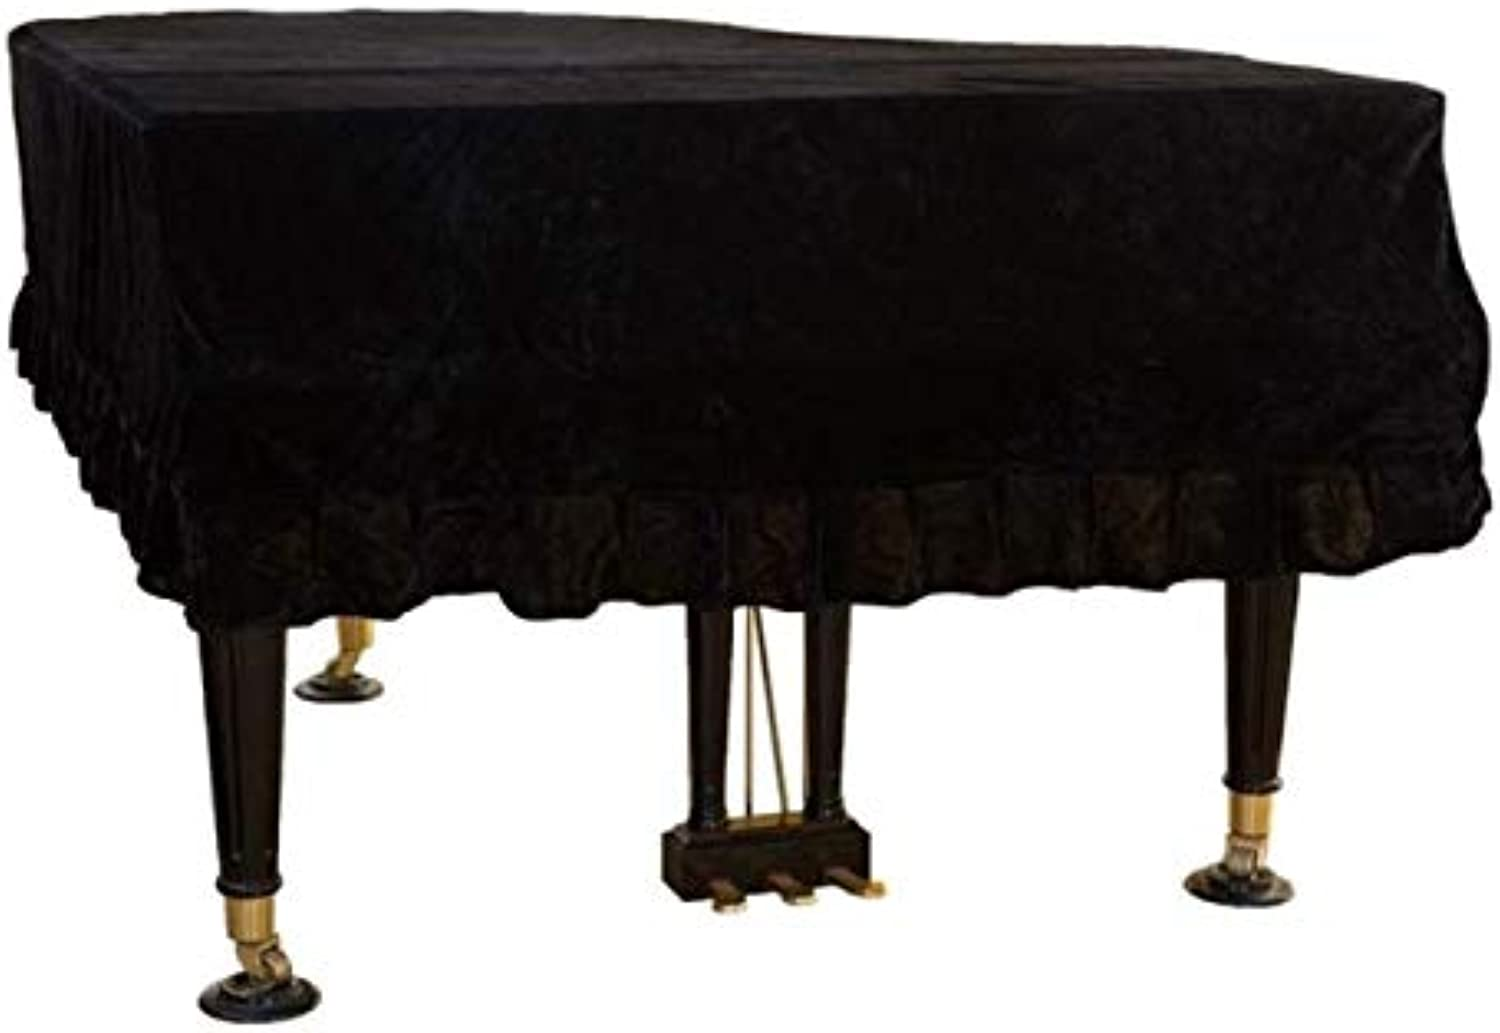 WANGYONGQI Thicken Grand Piano Cover 1 PCS Dust Proof Home Texile gold Velvet Cloth Cover Trigon Piano Accessories Cover